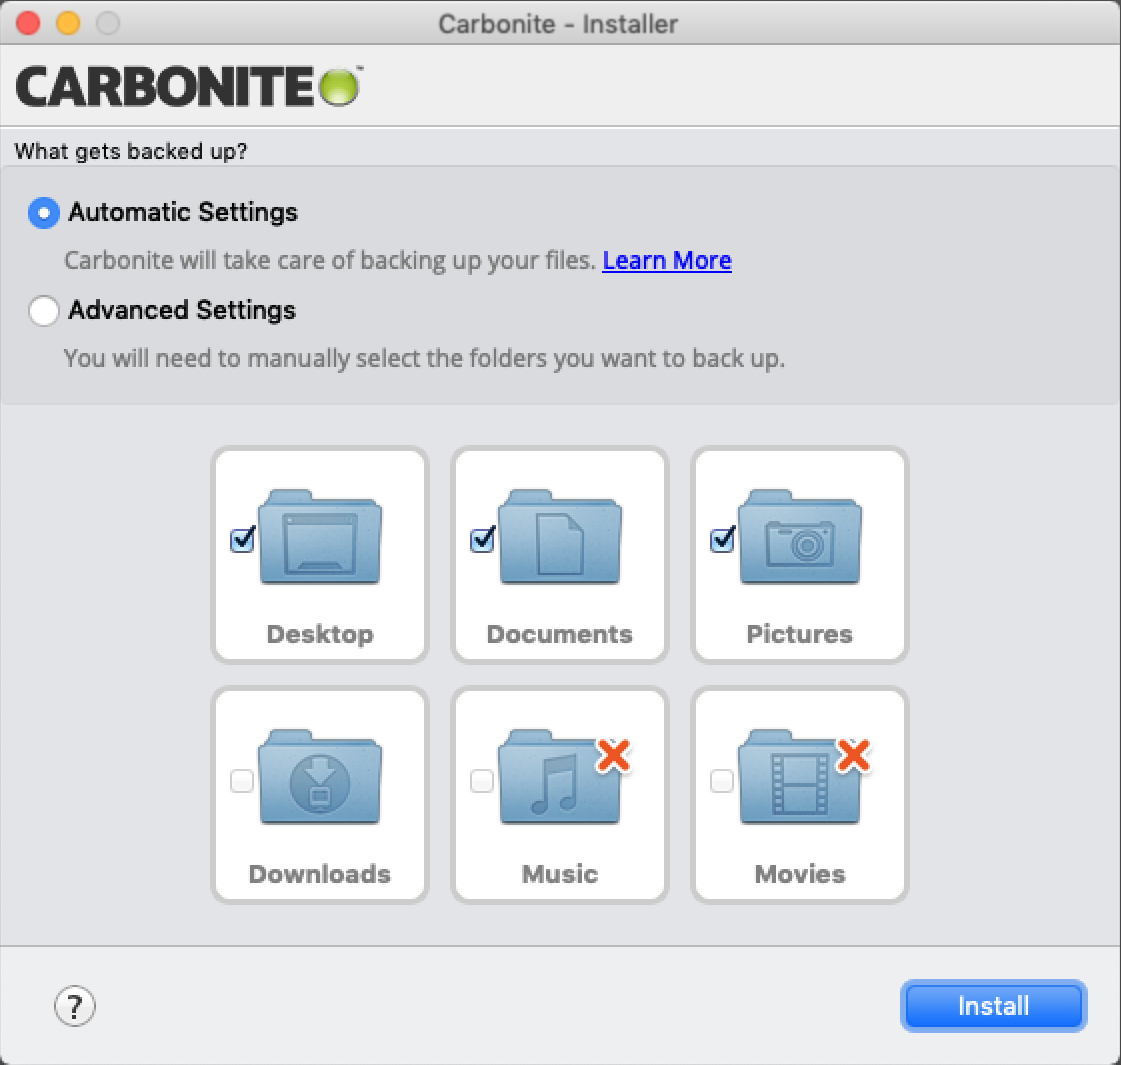 Carbonite 2.x Client: Select folders you want to back up